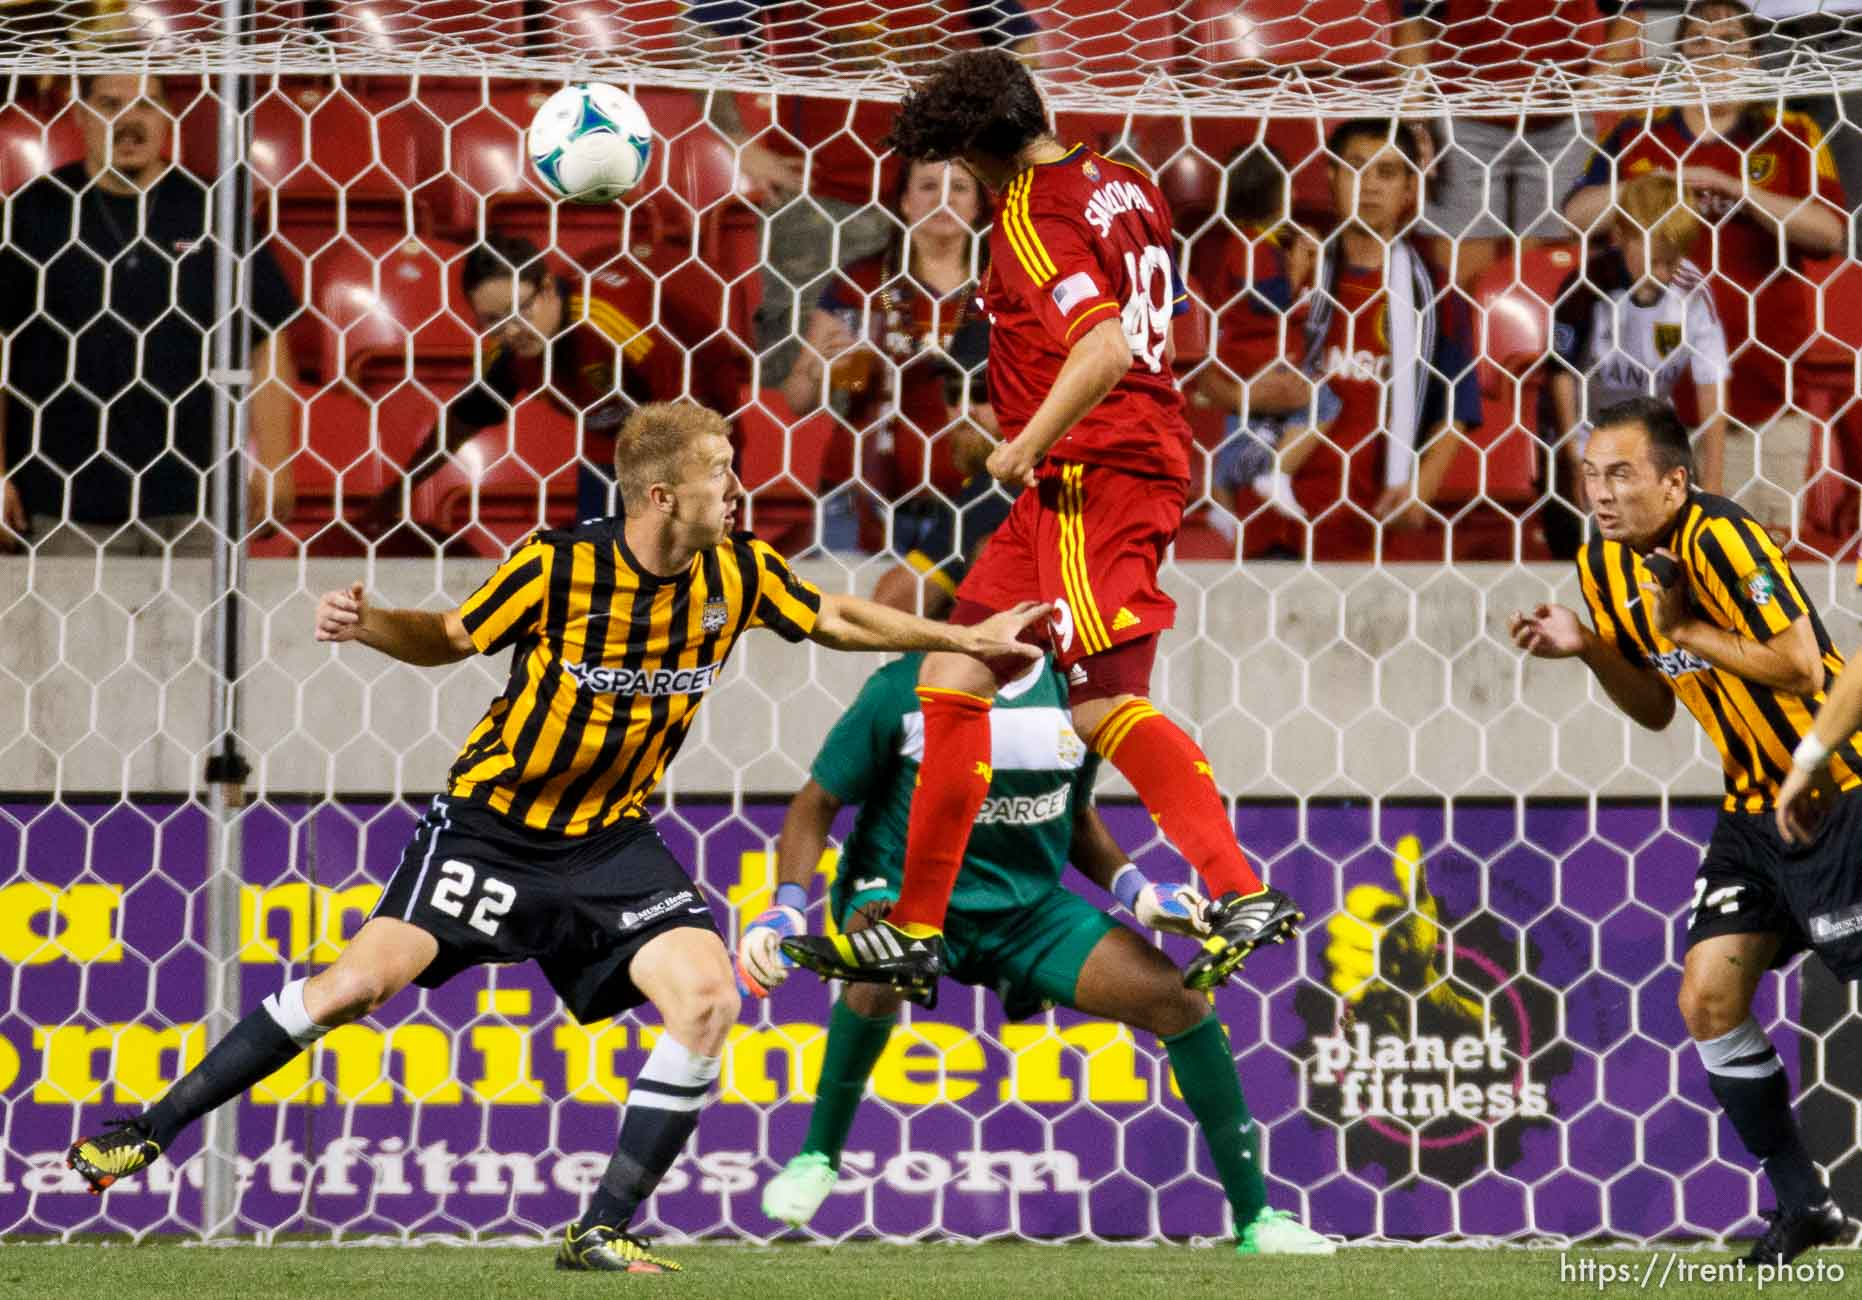 Trent Nelson | The Salt Lake Tribune Real Salt Lake's Devon Sandoval heads in a goal in the first overtime period as Real Salt Lake hosts Charleston Battery in the US Open Cup Wednesday June 12, 2013 at Rio Tinto Stadium in Sandy, Utah.